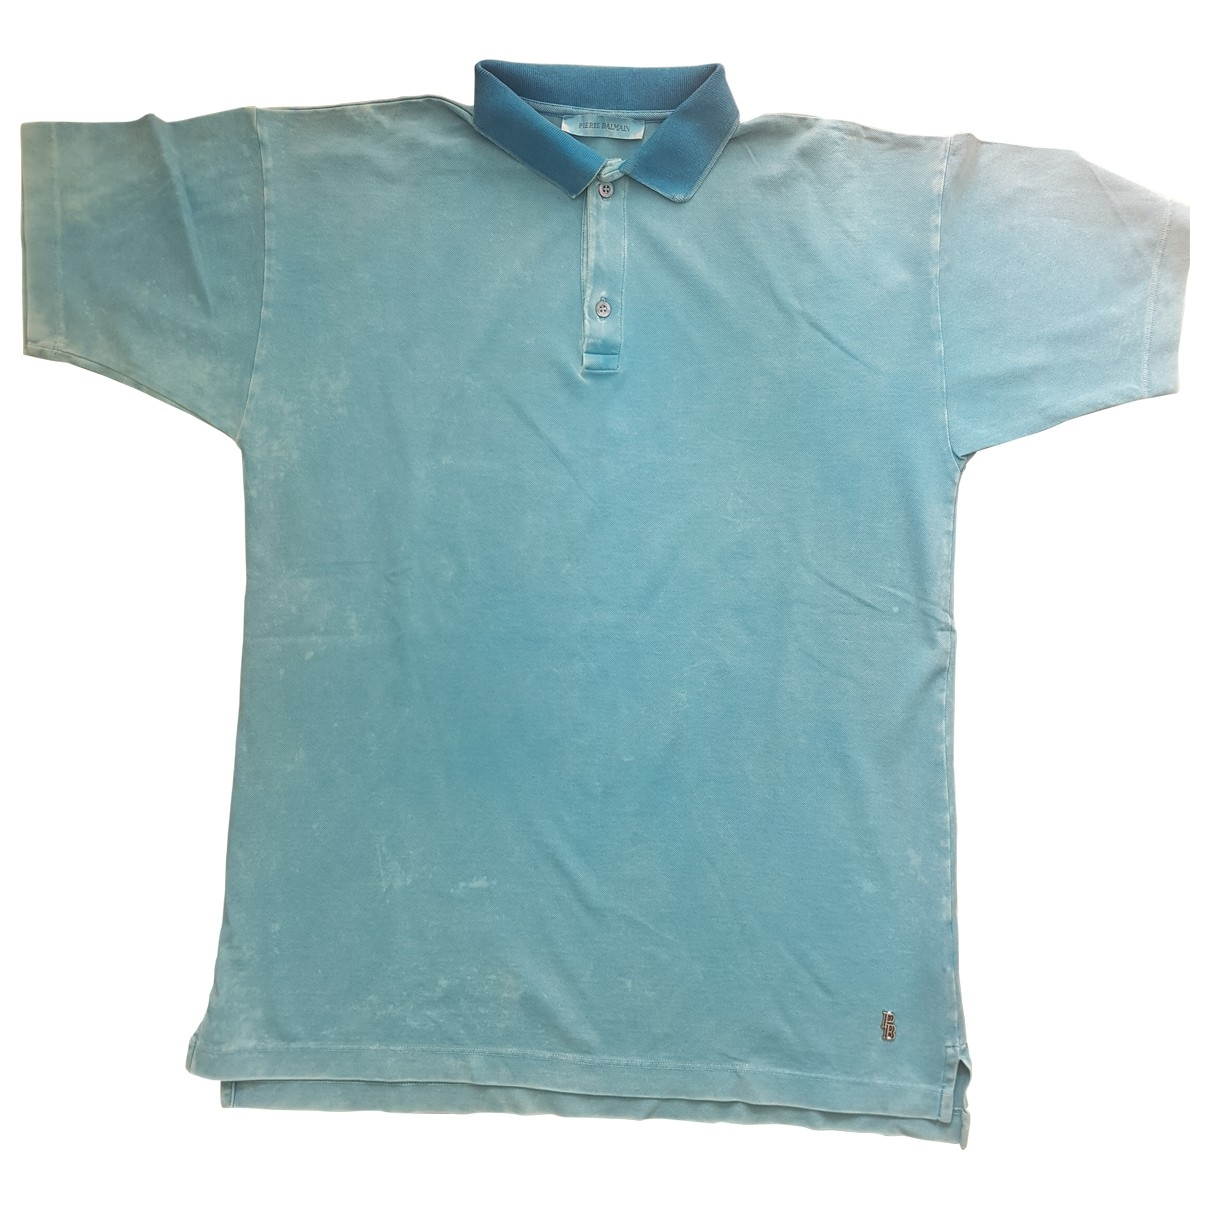 Balmain \N Turquoise Cotton Polo shirts for Men 48 IT